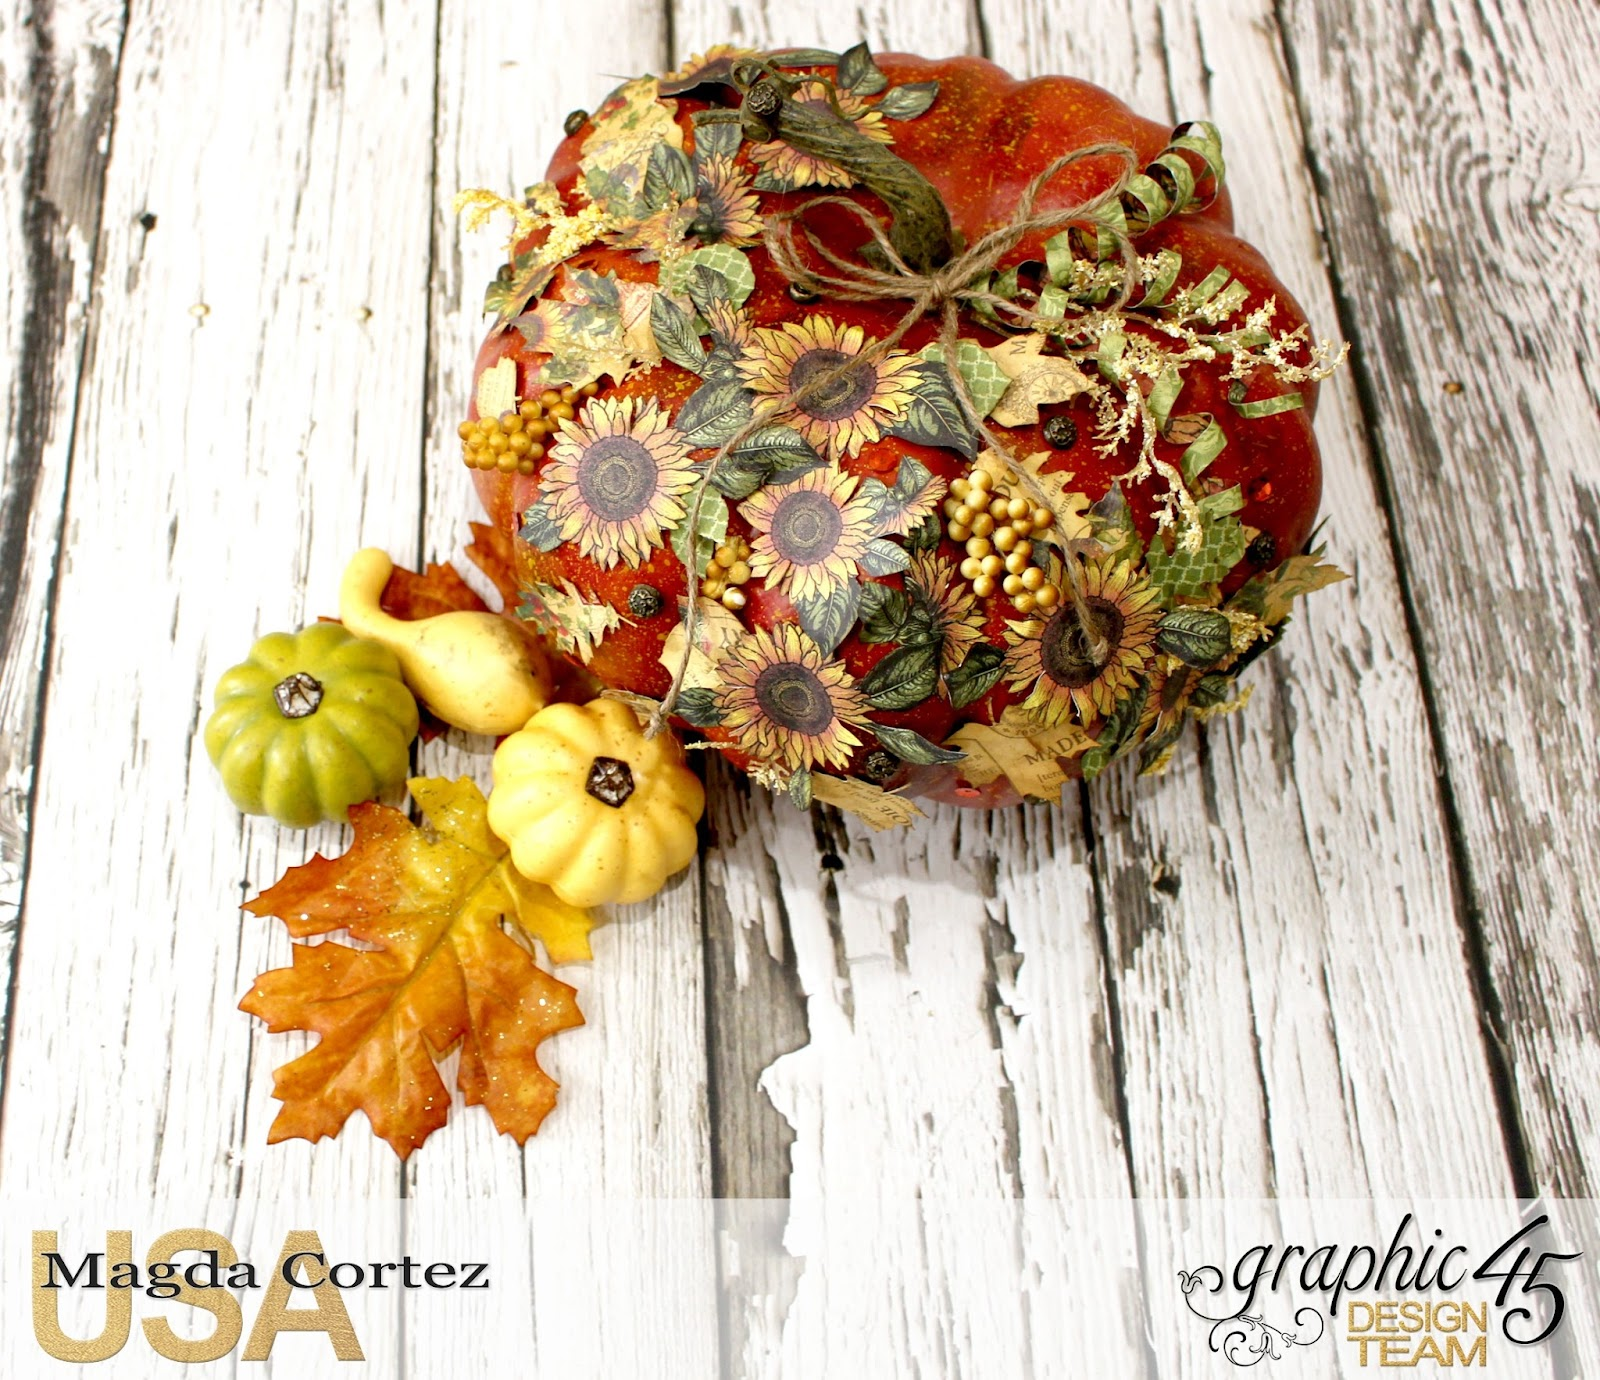 Fall Decor-French Country By Magda Cortez, Product of Graphic 45, Photo 03 of 07.jpg